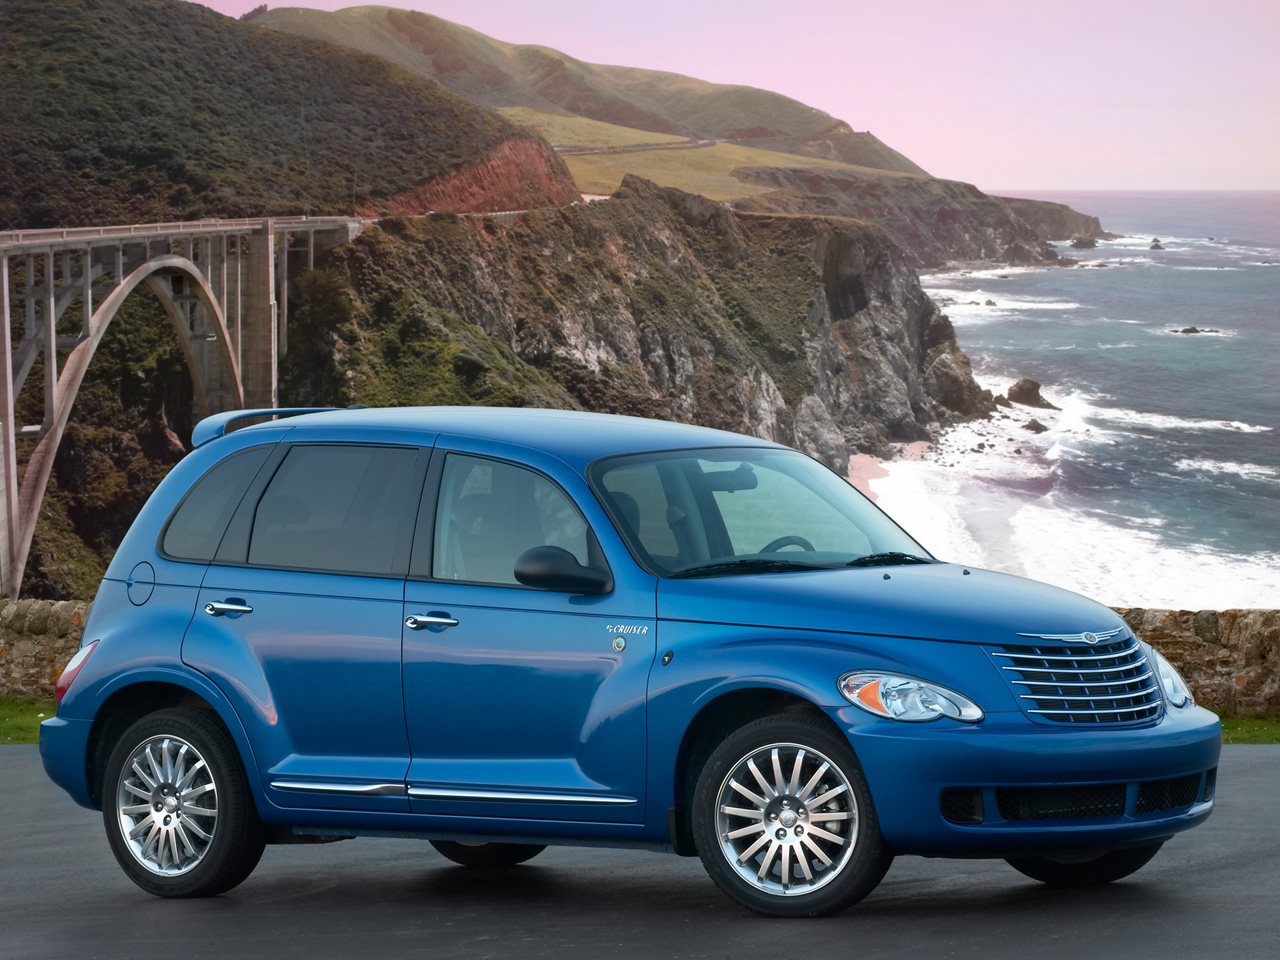 Chrysler PT Cruiser #15